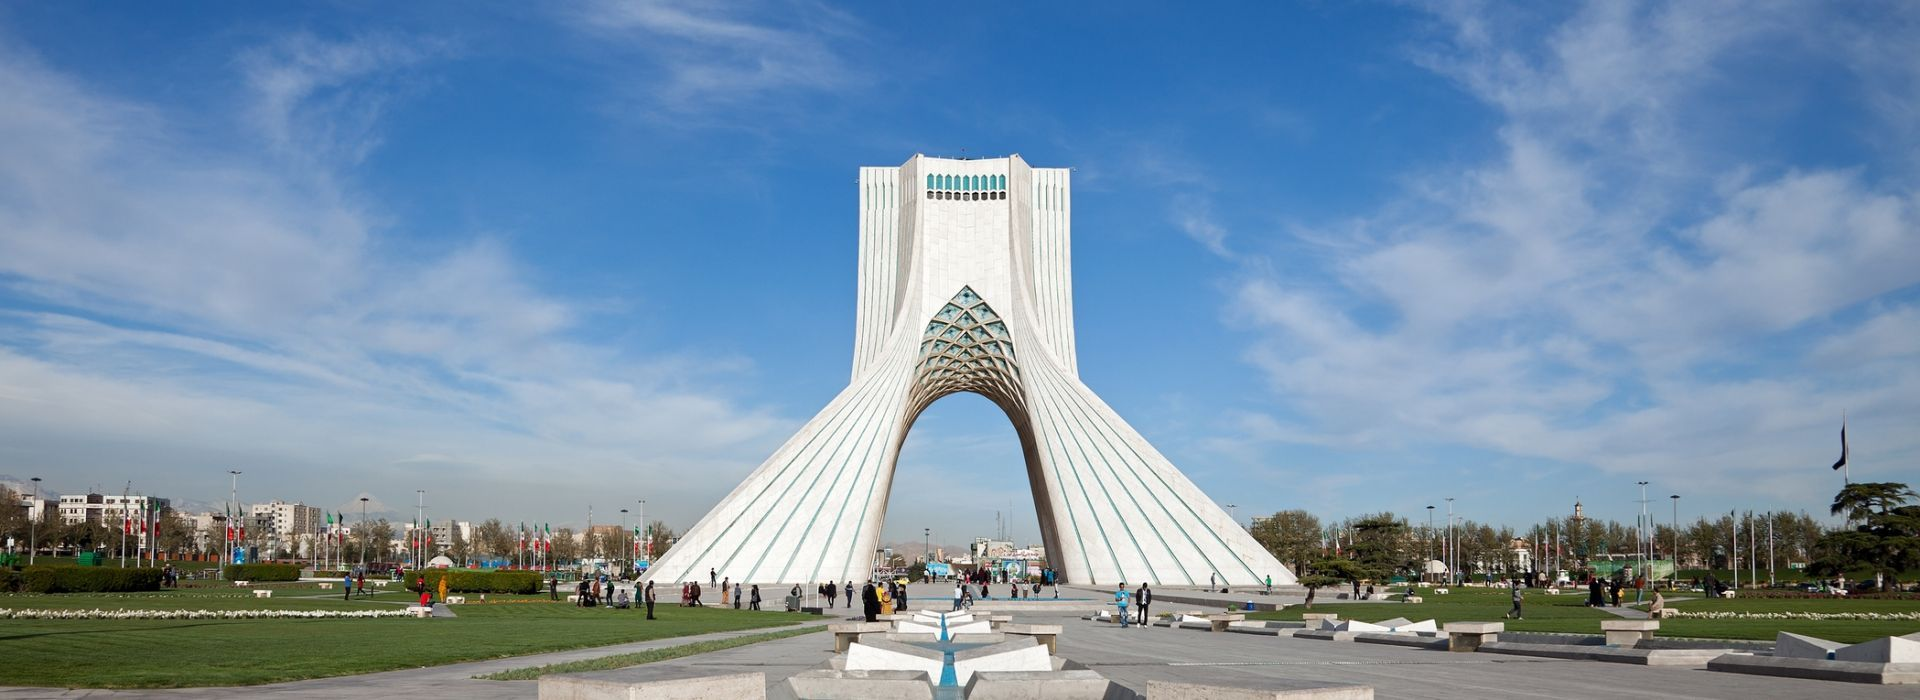 City sightseeing Tours in Iran